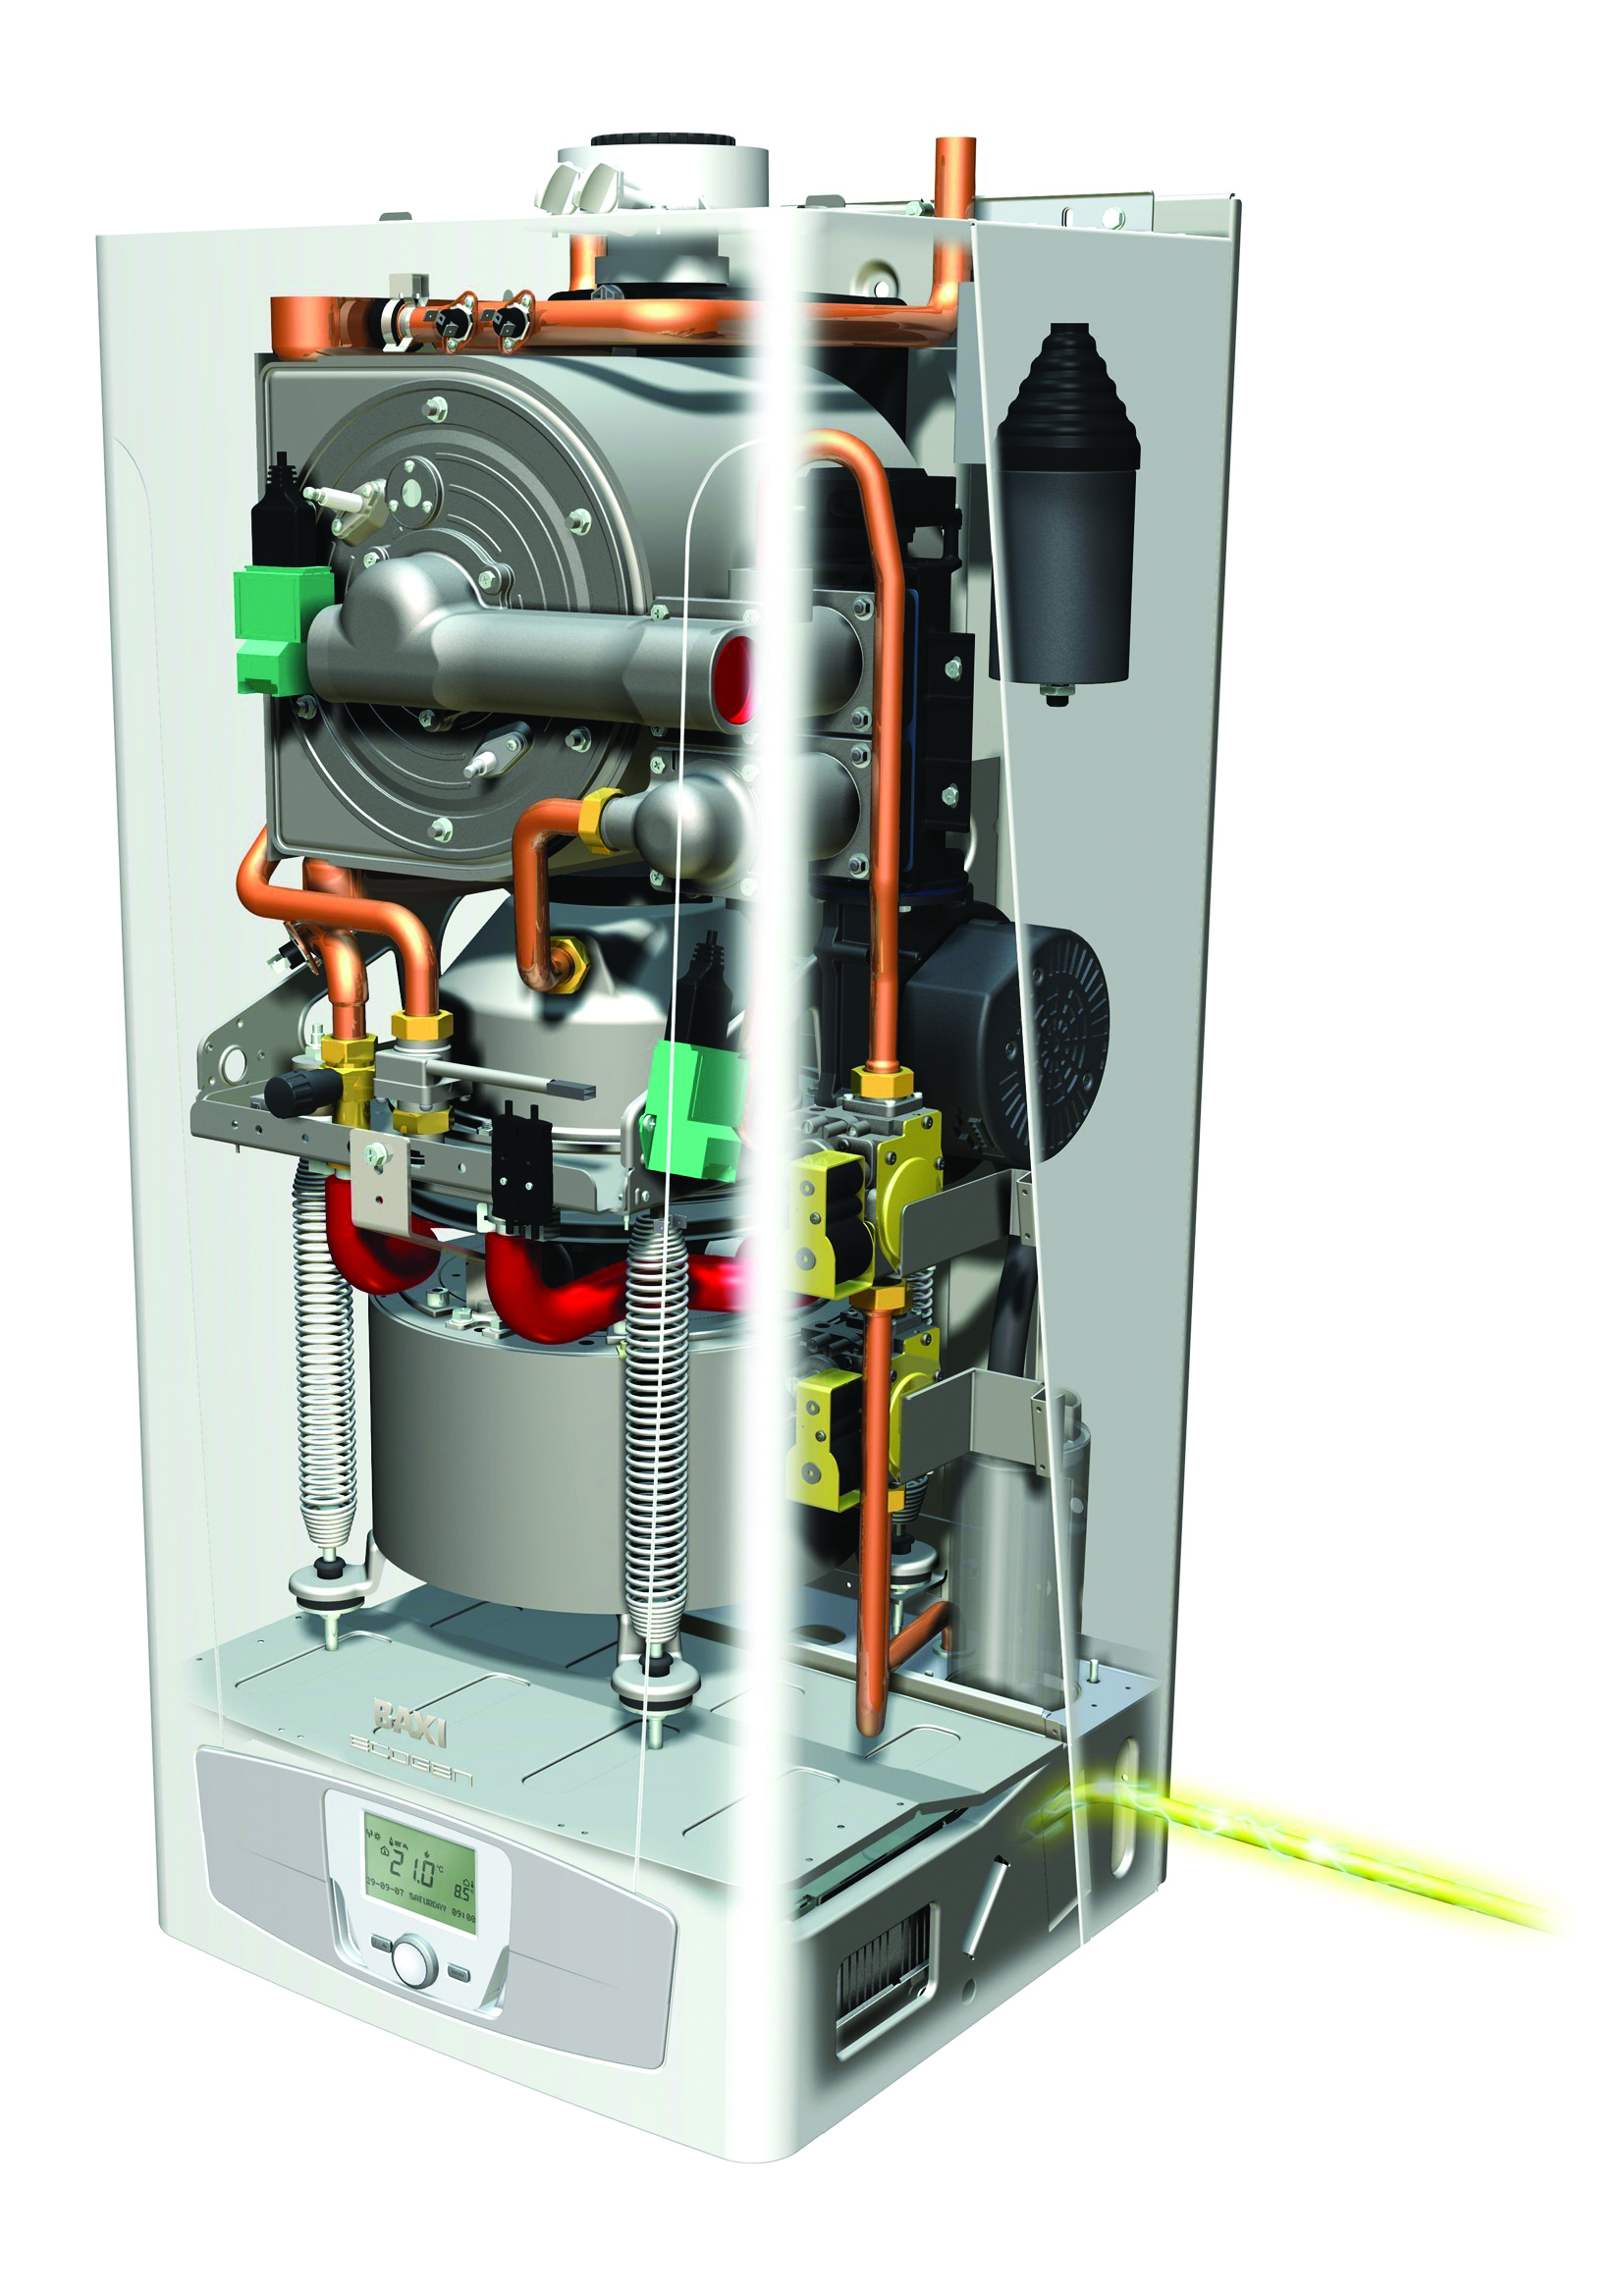 Heating and hot water systems - SelfBuild